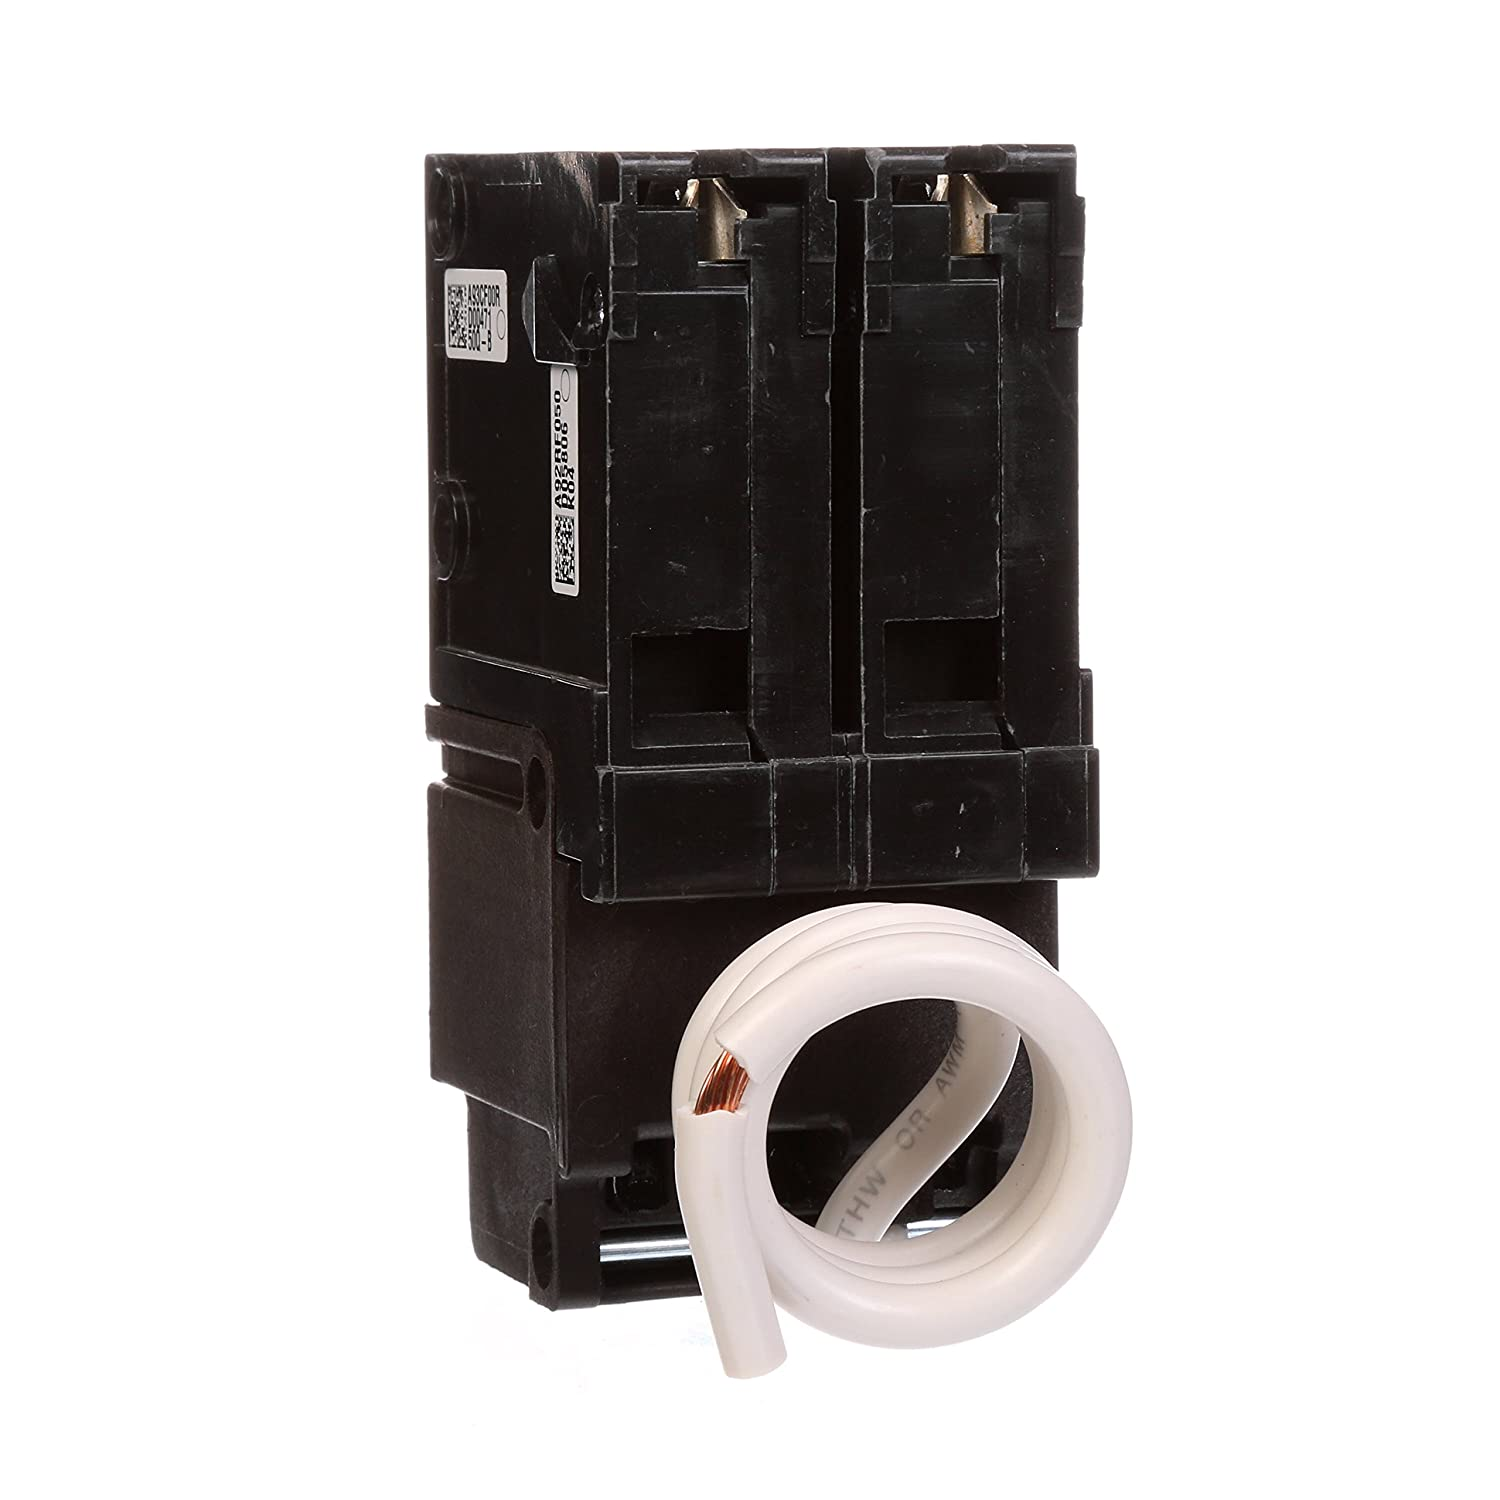 Murray Mp250gfa 50 Amp 2 Pole Gfci Circuit Breaker With Self Test 20 In Doublepole Lockout Feature